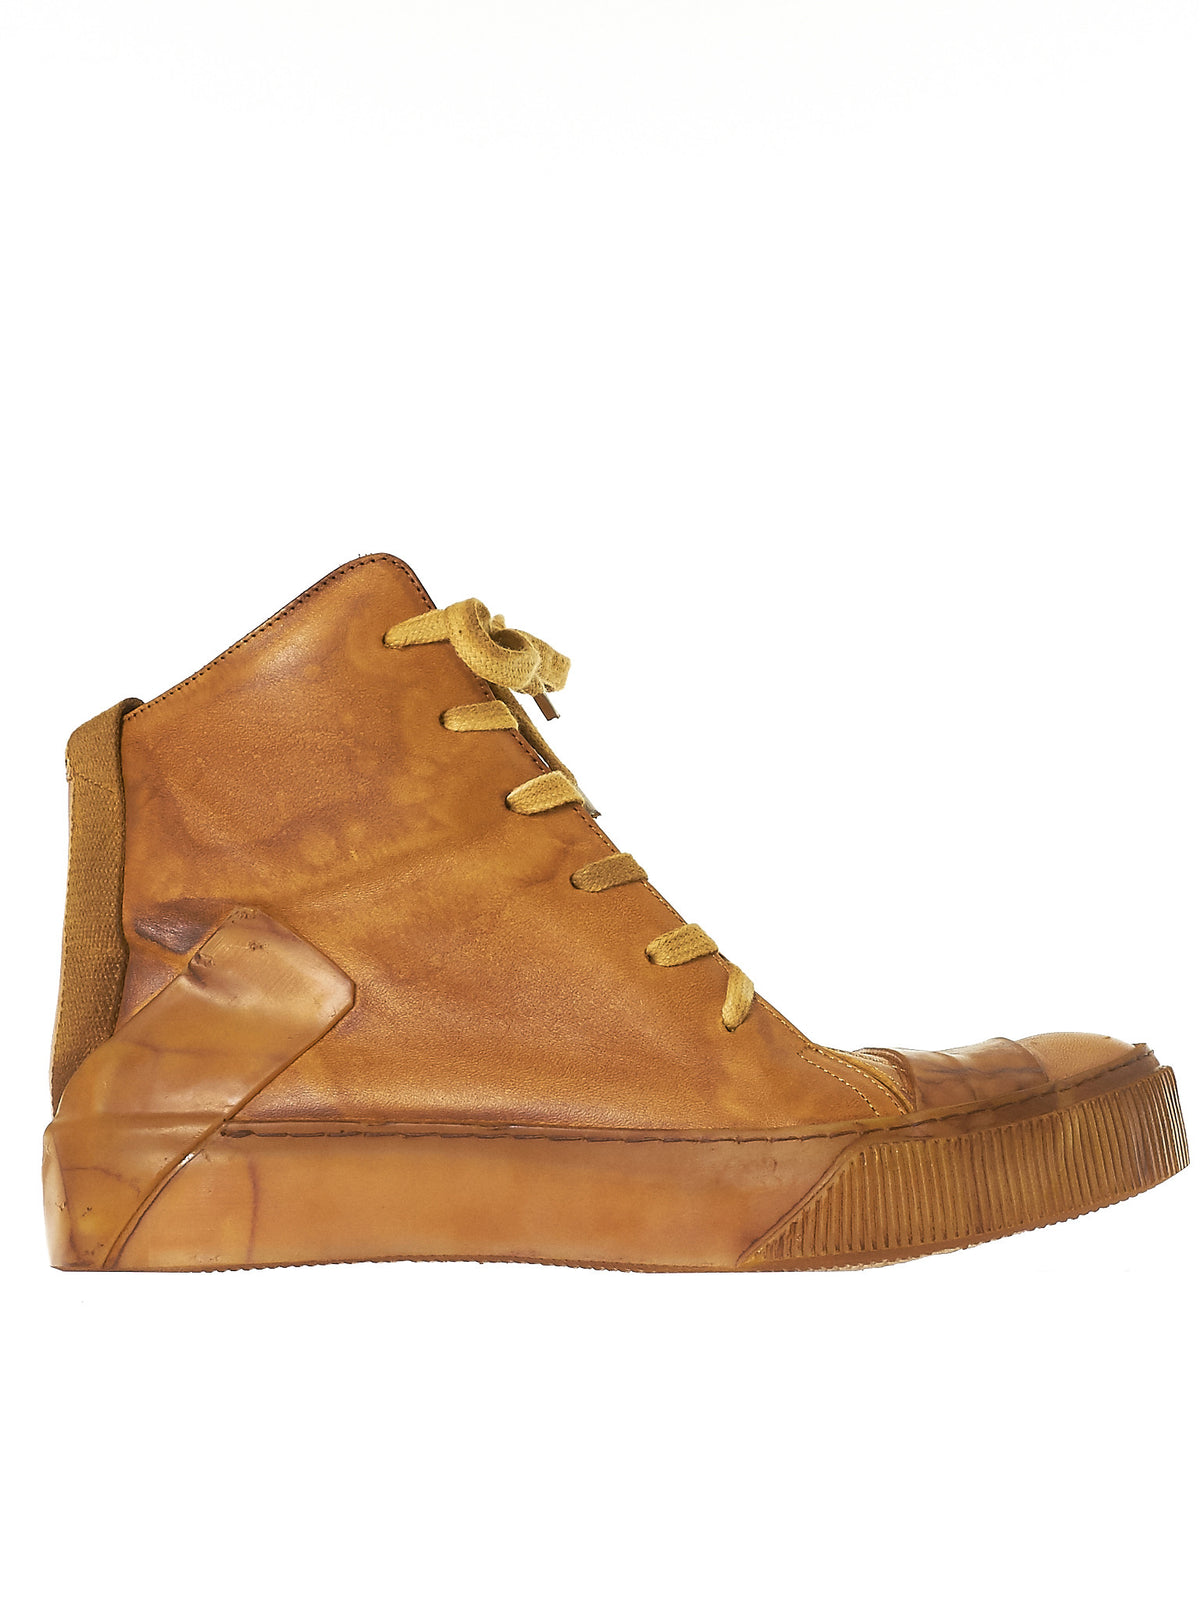 Tanned Leather Sneakers (BAMBA1-F235-C5) - H. Lorenzo